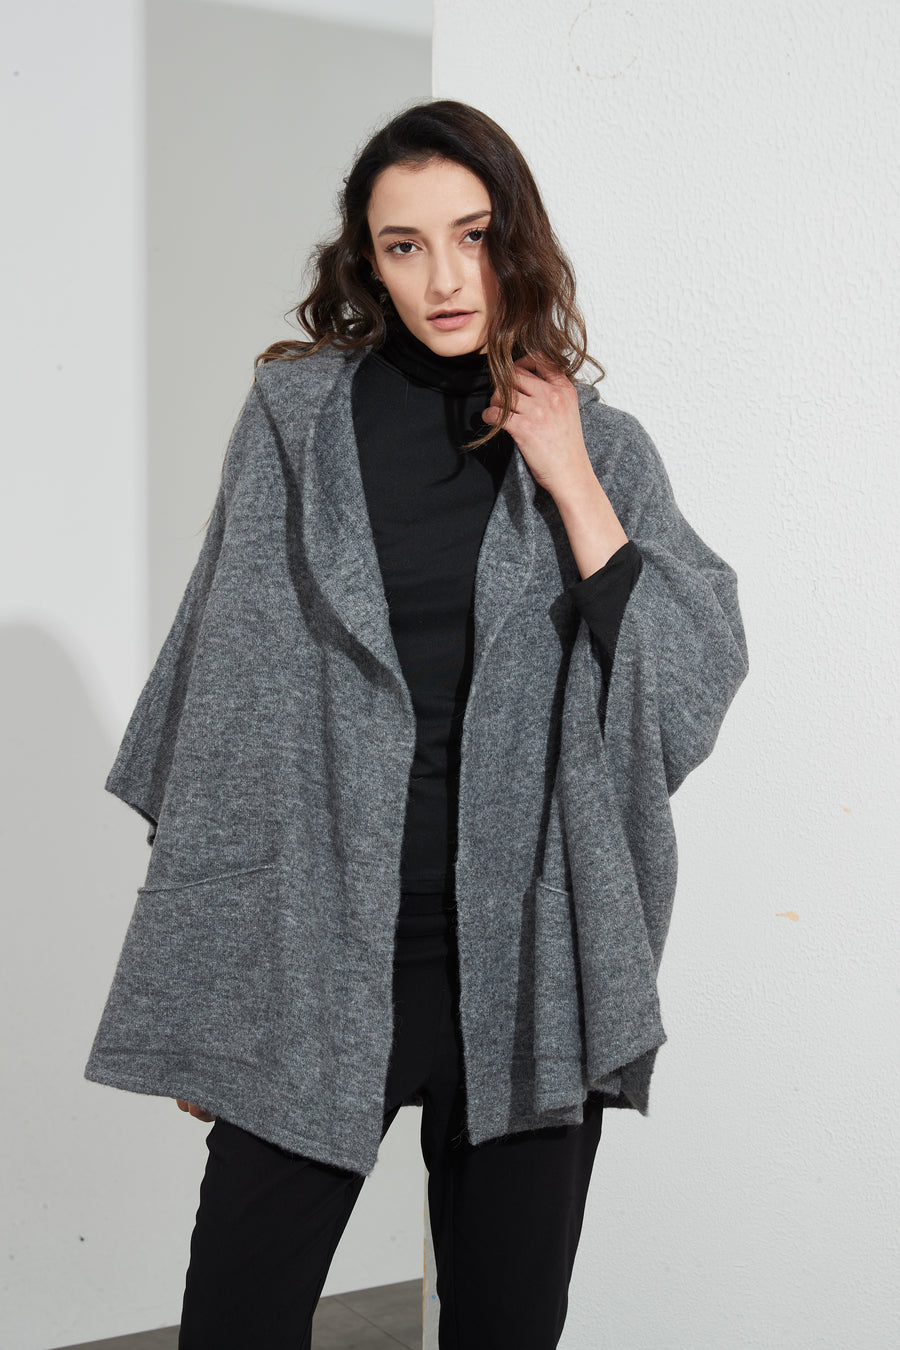 MAGNETIC CLOSURE CARDIGAN